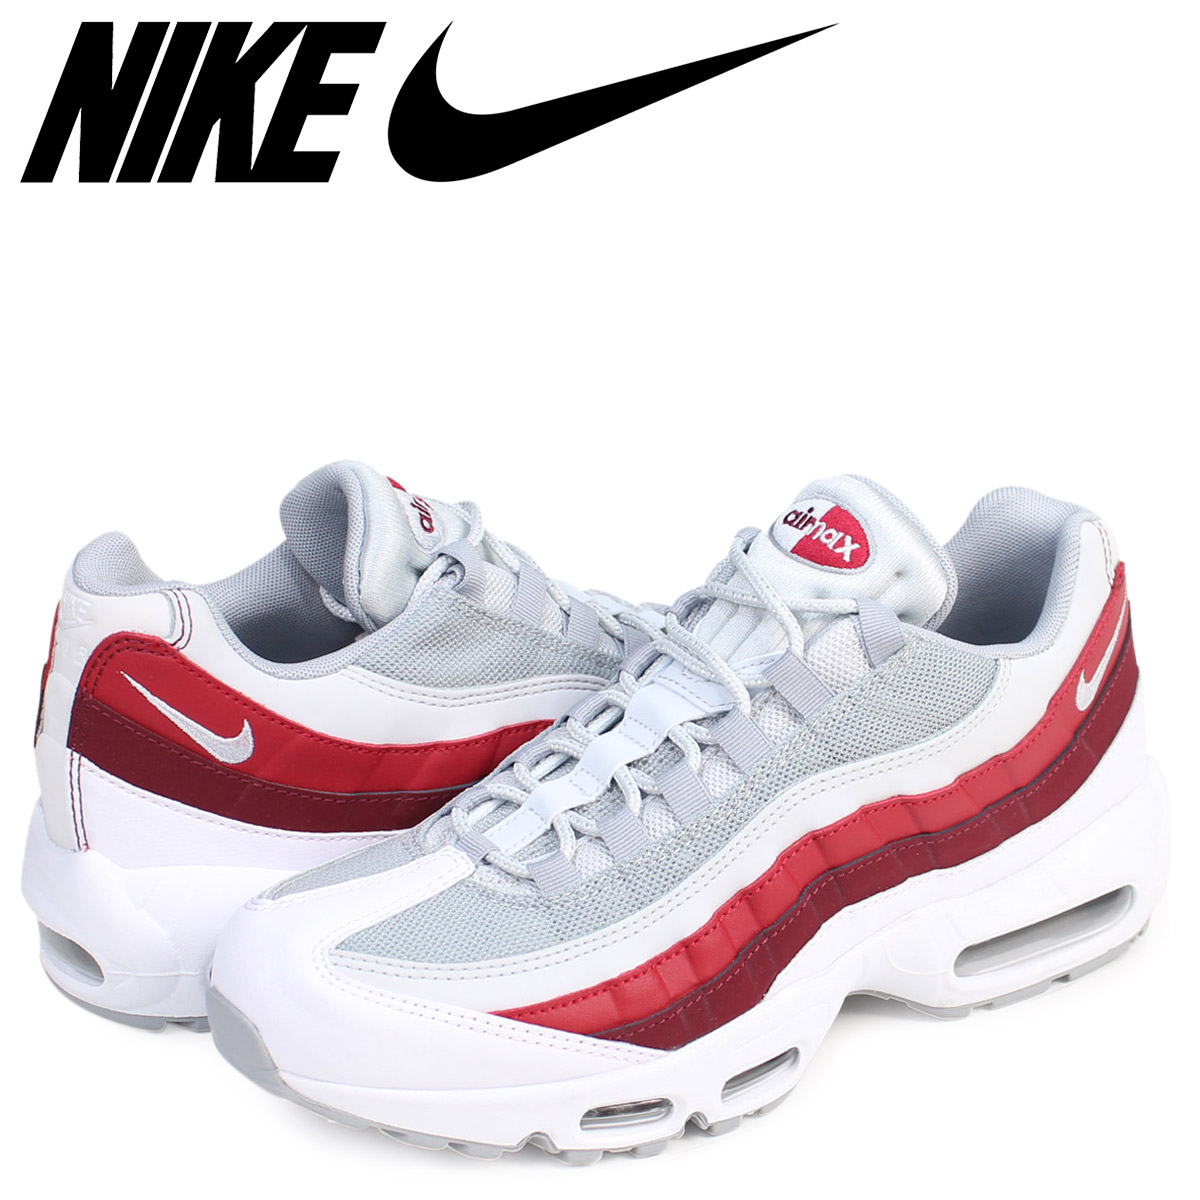 5c3a6b9ee166 Whats up Sports  Nike NIKE Air Max 95 essential sneakers AIR MAX 95  ESSENTIAL 749